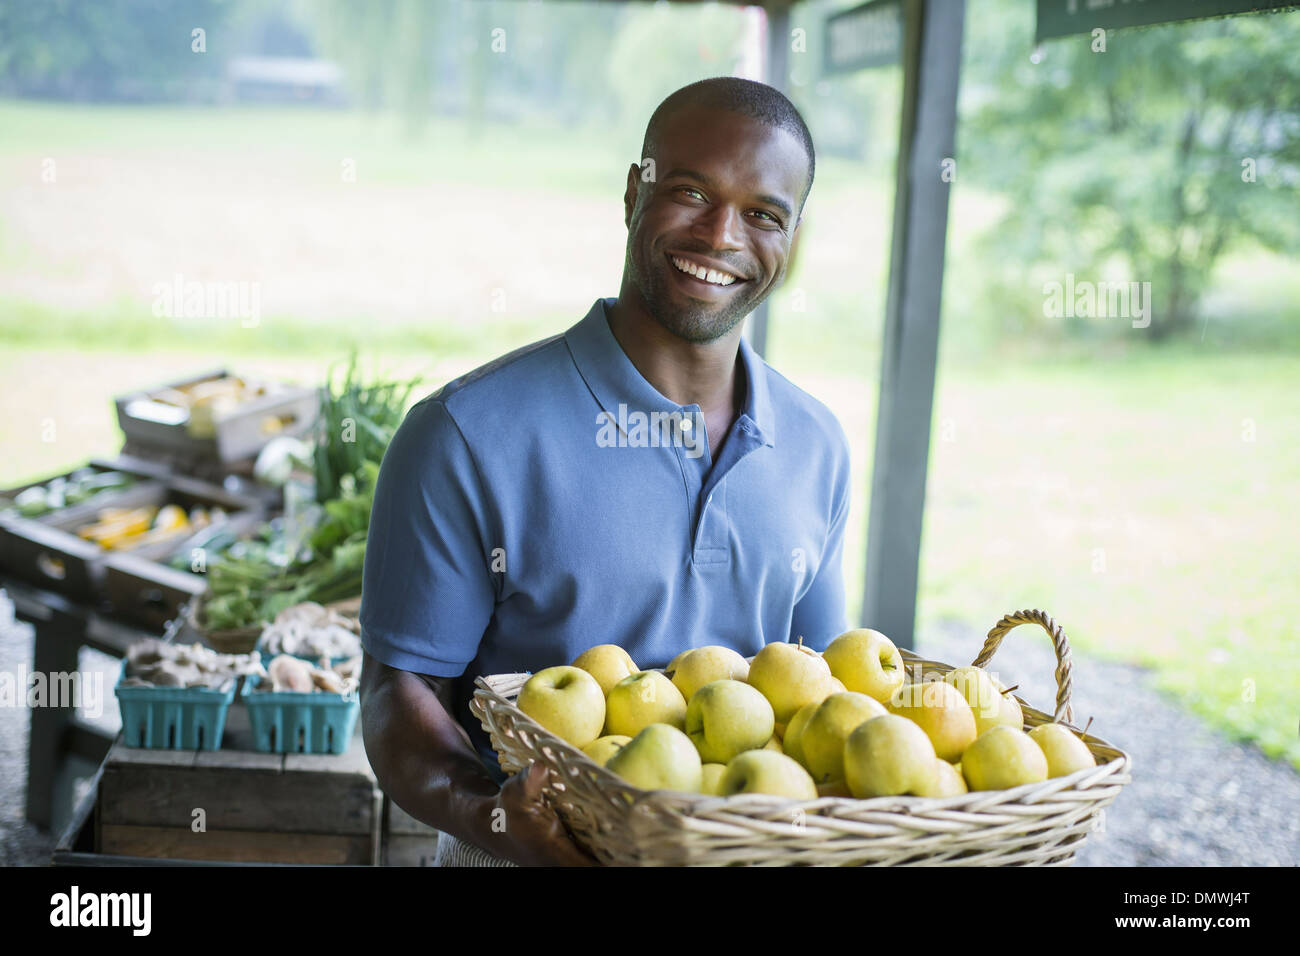 An organic fruit and vegetable farm. A man carrying vegetables. Stock Photo